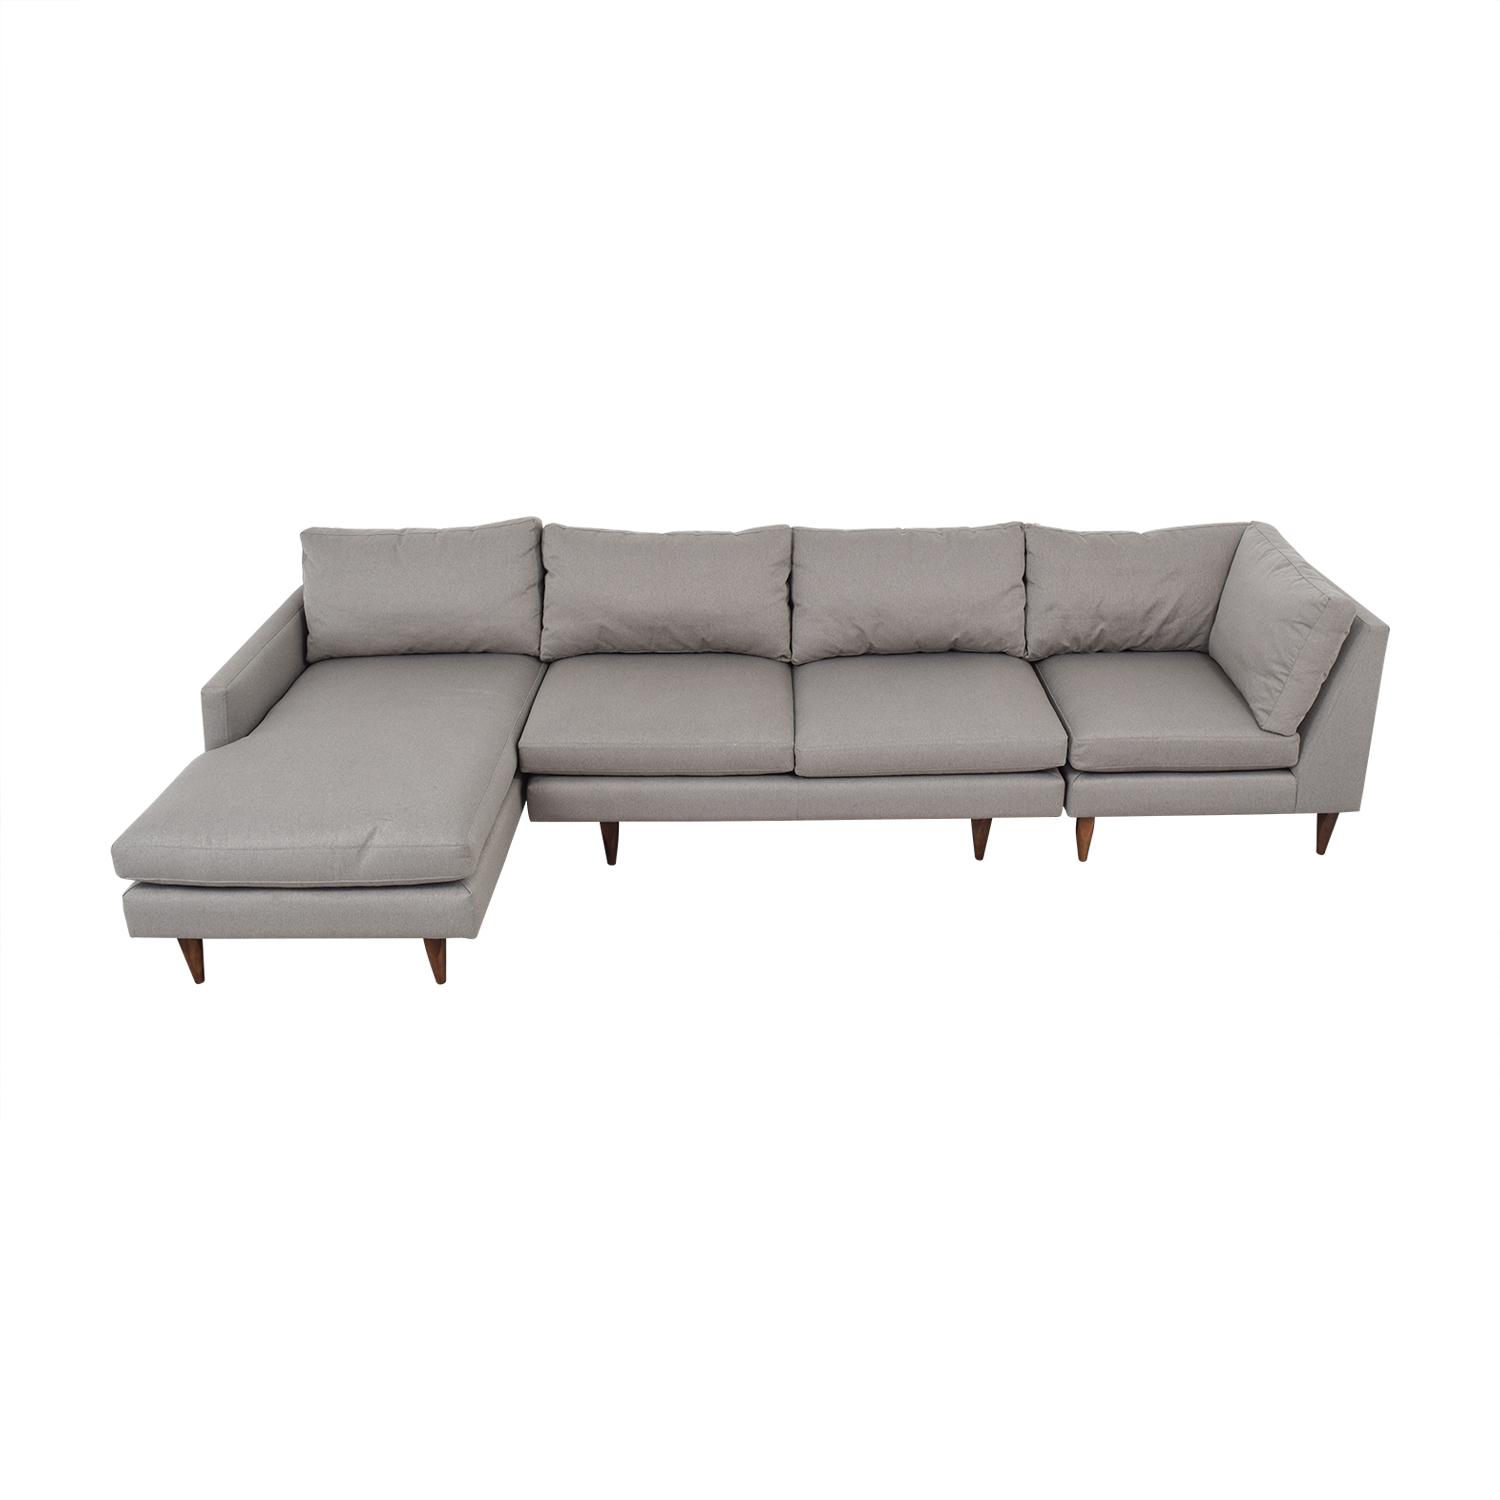 Room & Board Room & Board Jasper Grey Chaise Sectional Sofas